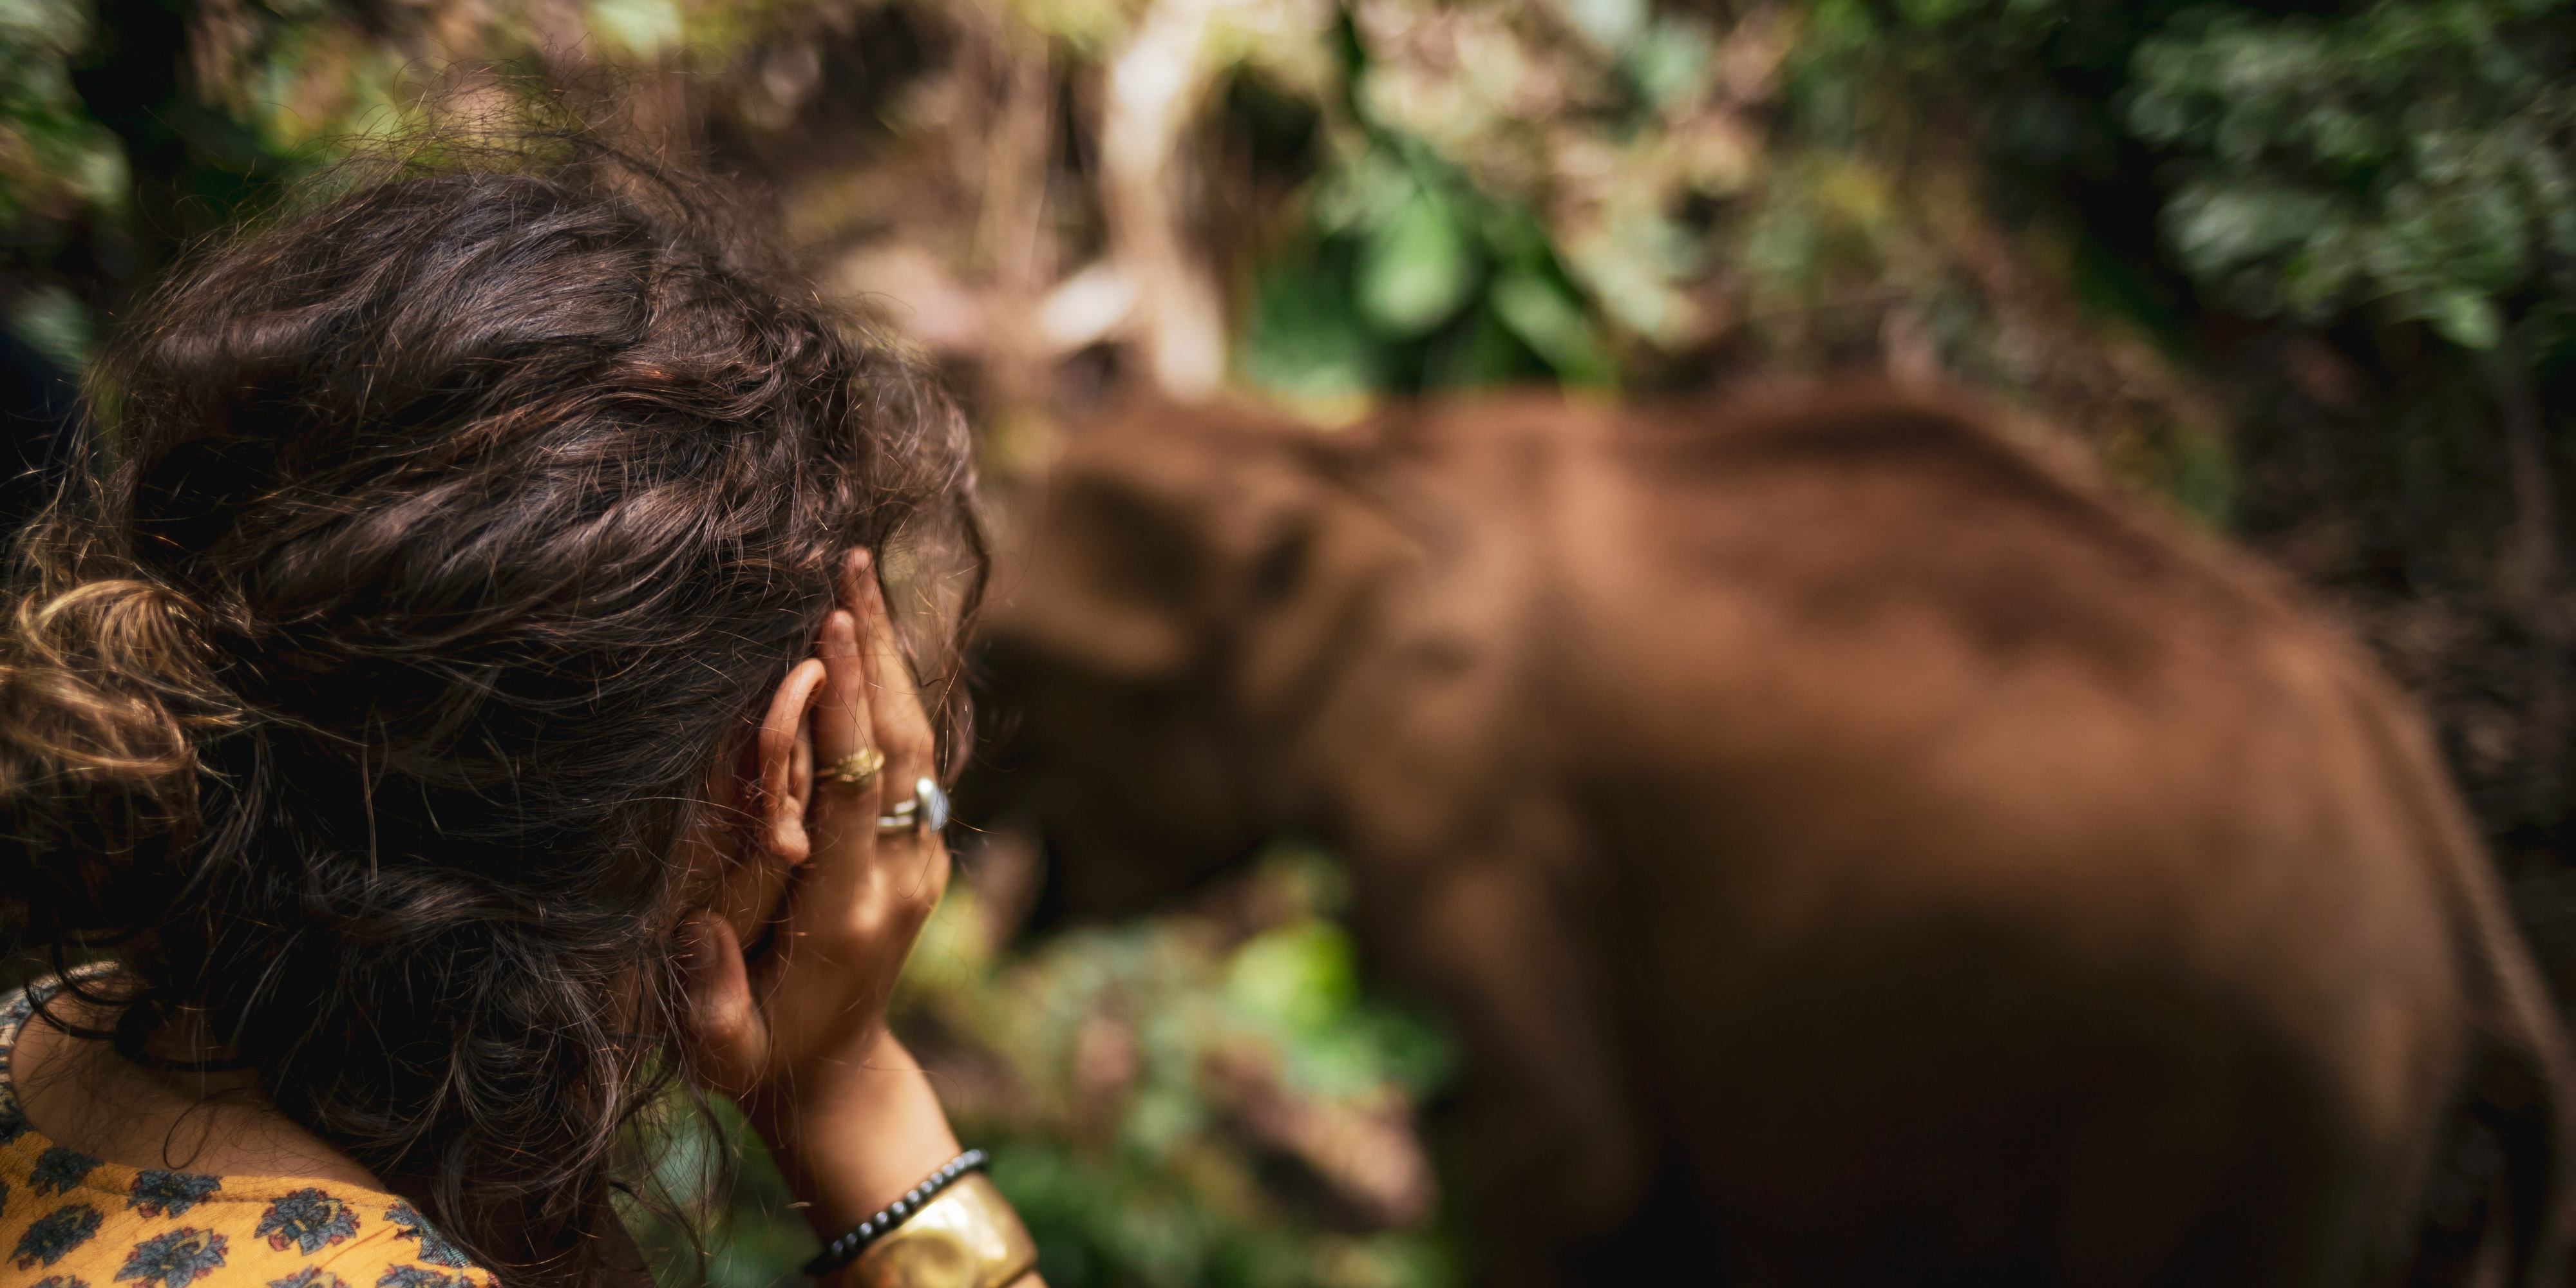 A GVI participant observes an elephant in the forest. The forests of Chiang Mai are the best place to visit elephants in Thailand.